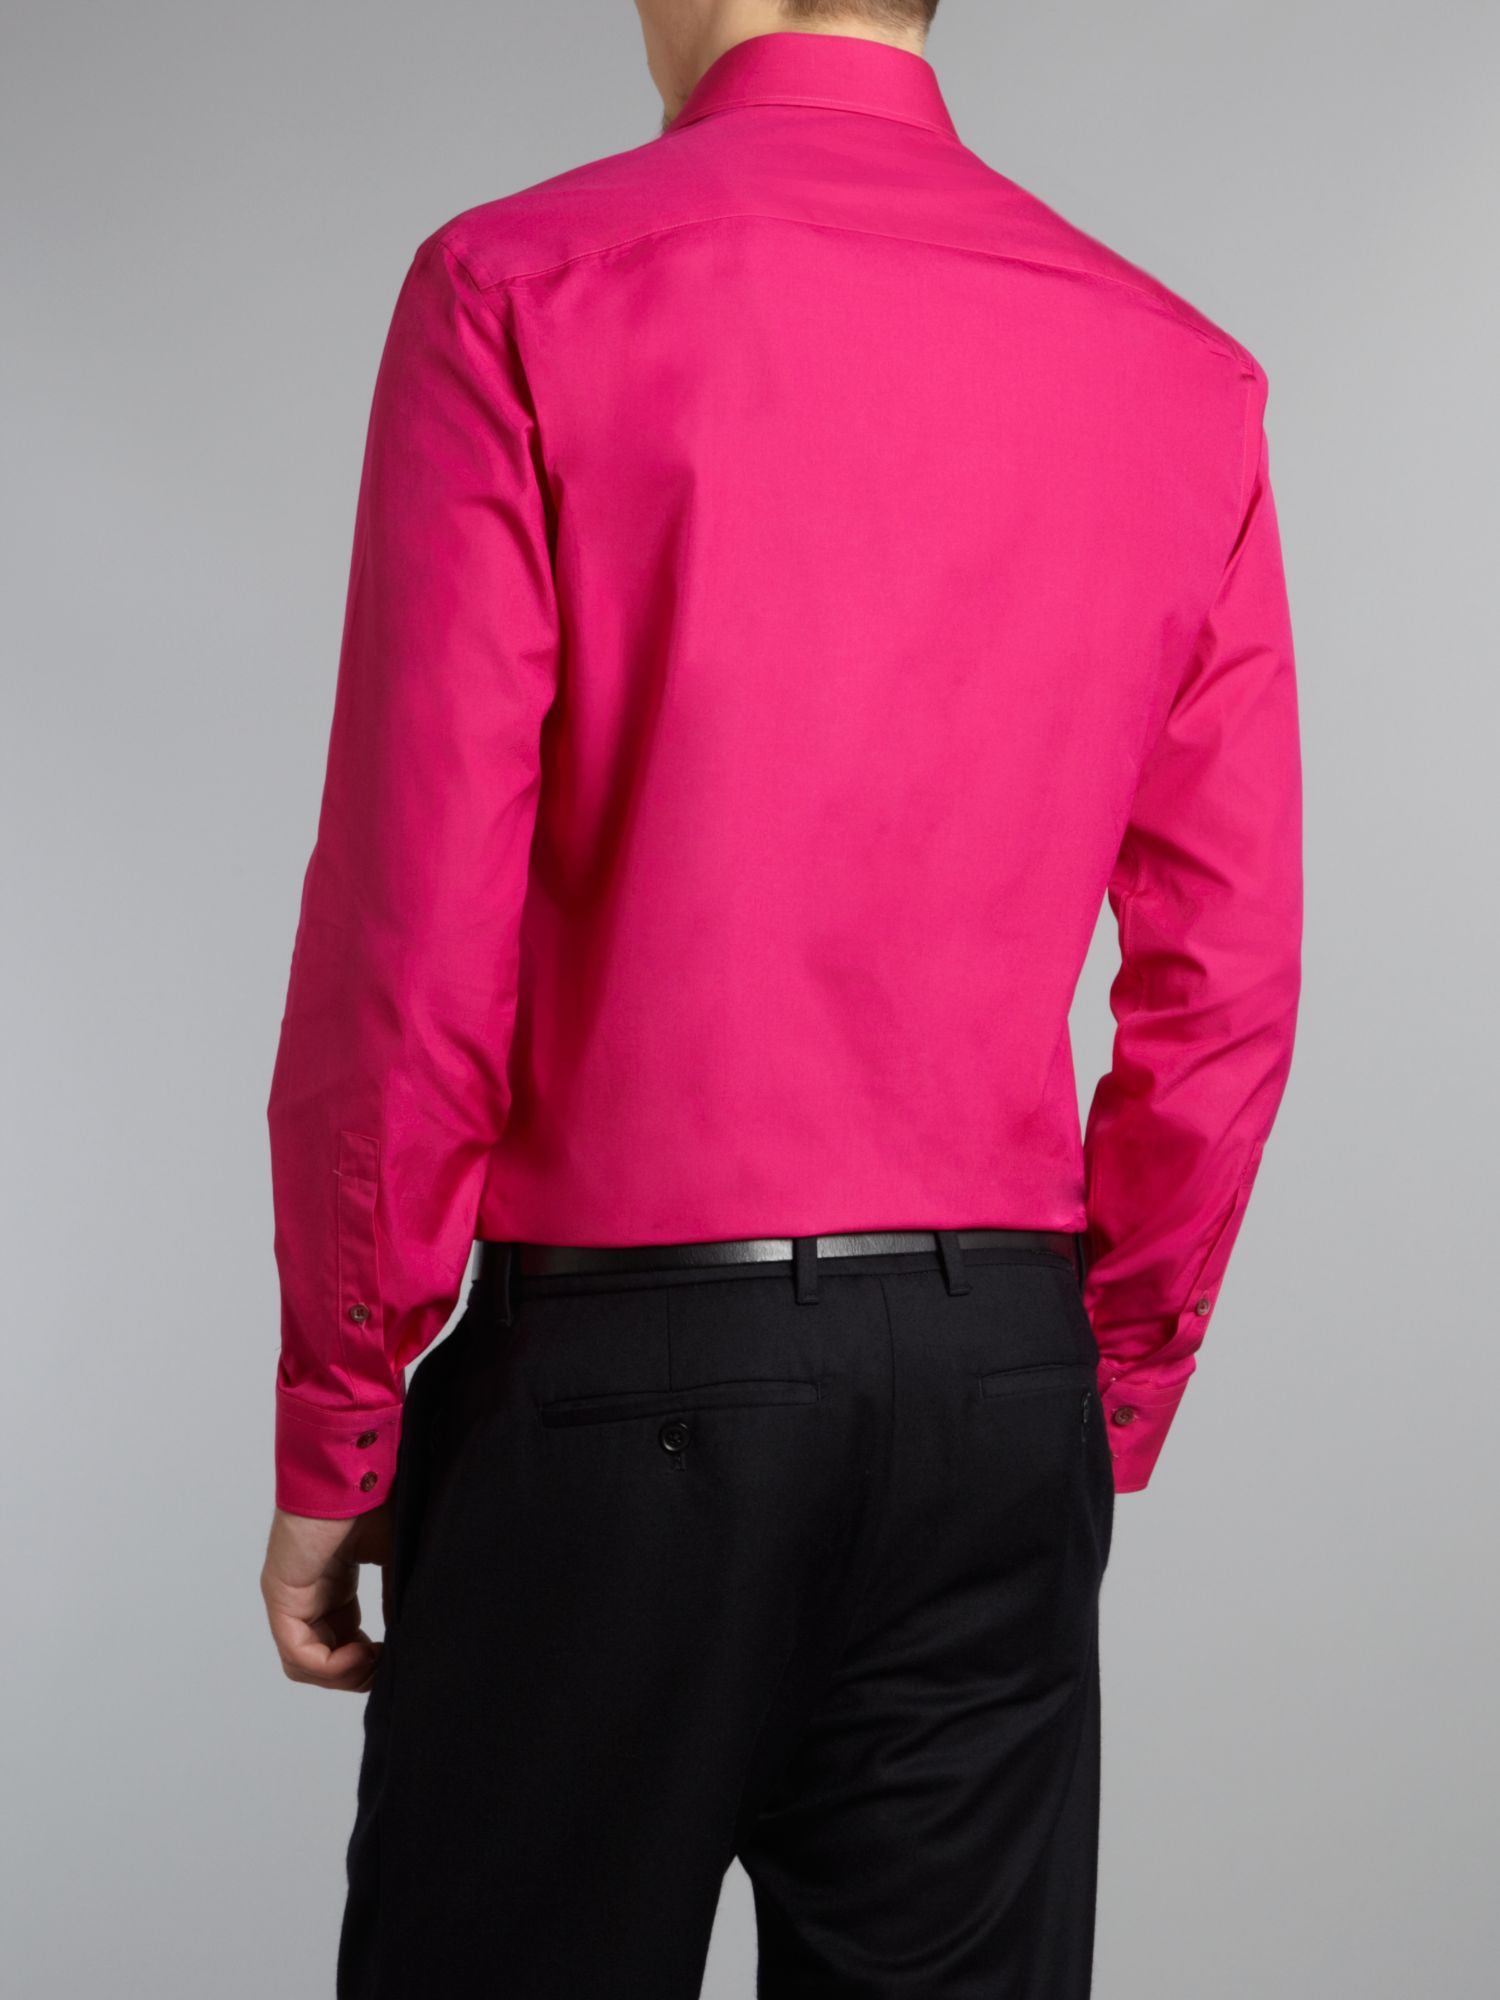 Bright Pink Shirt Mens Photo Album - Fashion Trends and Models